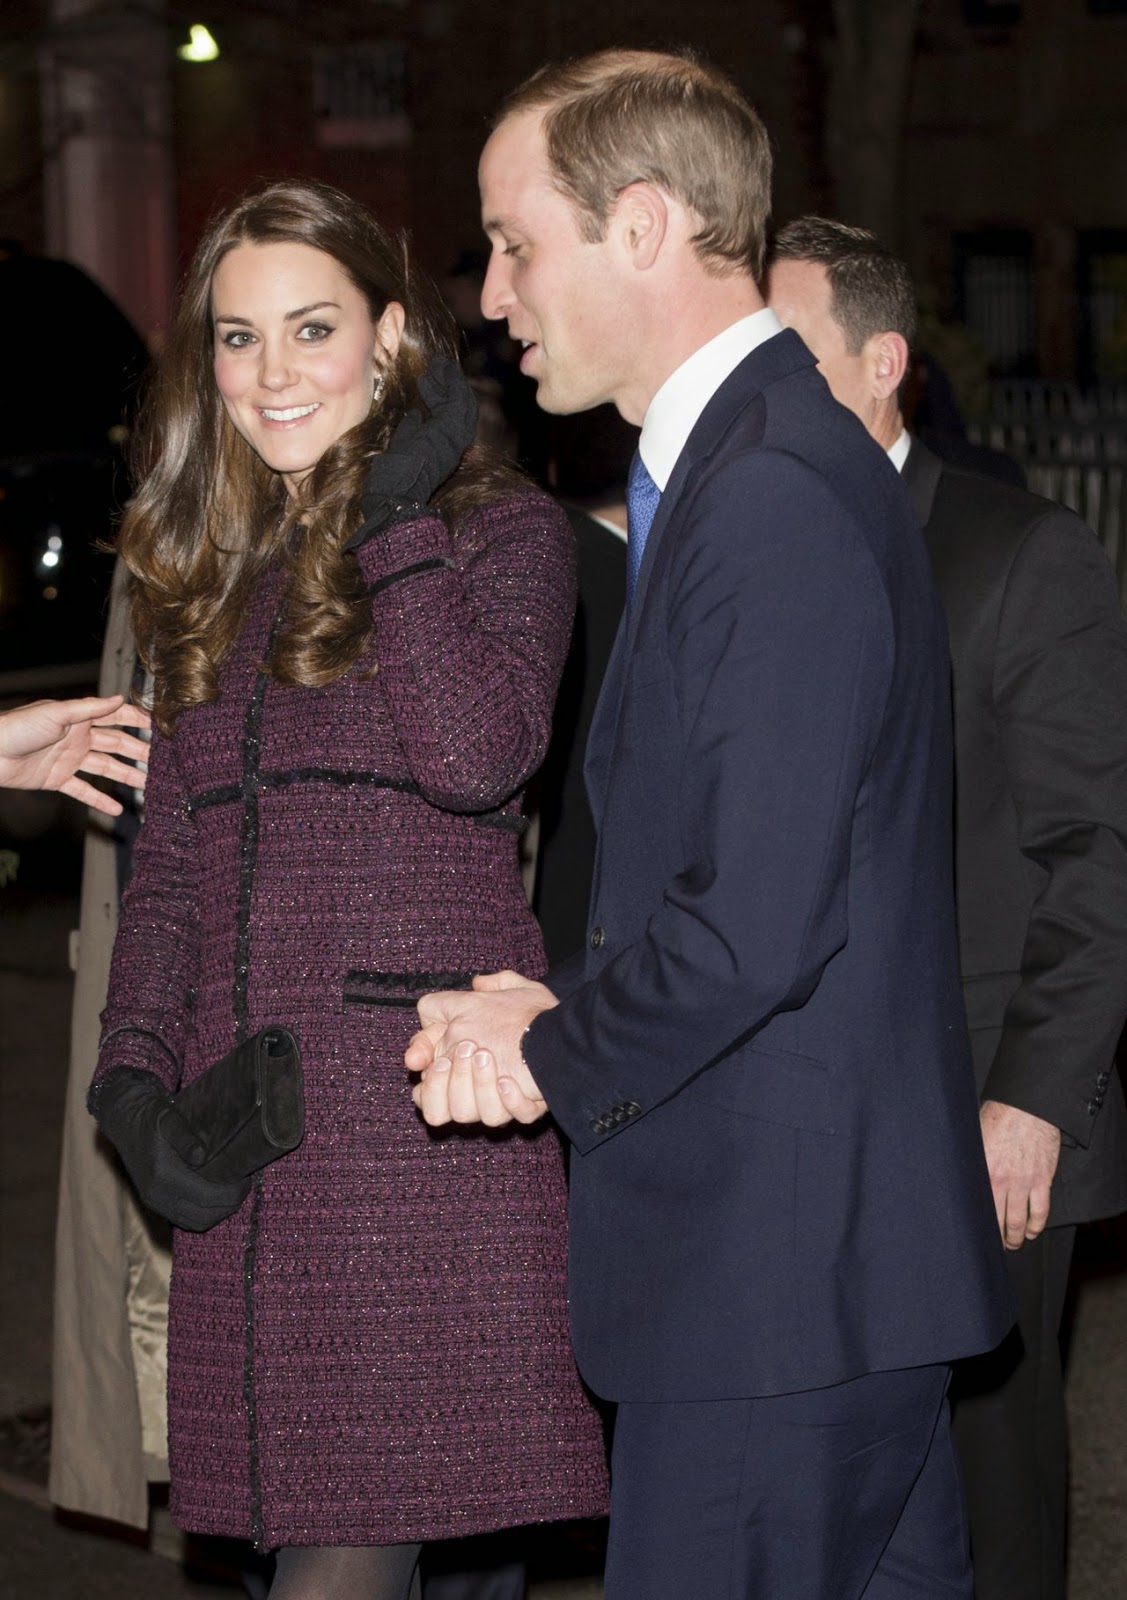 Kate Middleton arrives in New York in a purple Seraphine coat